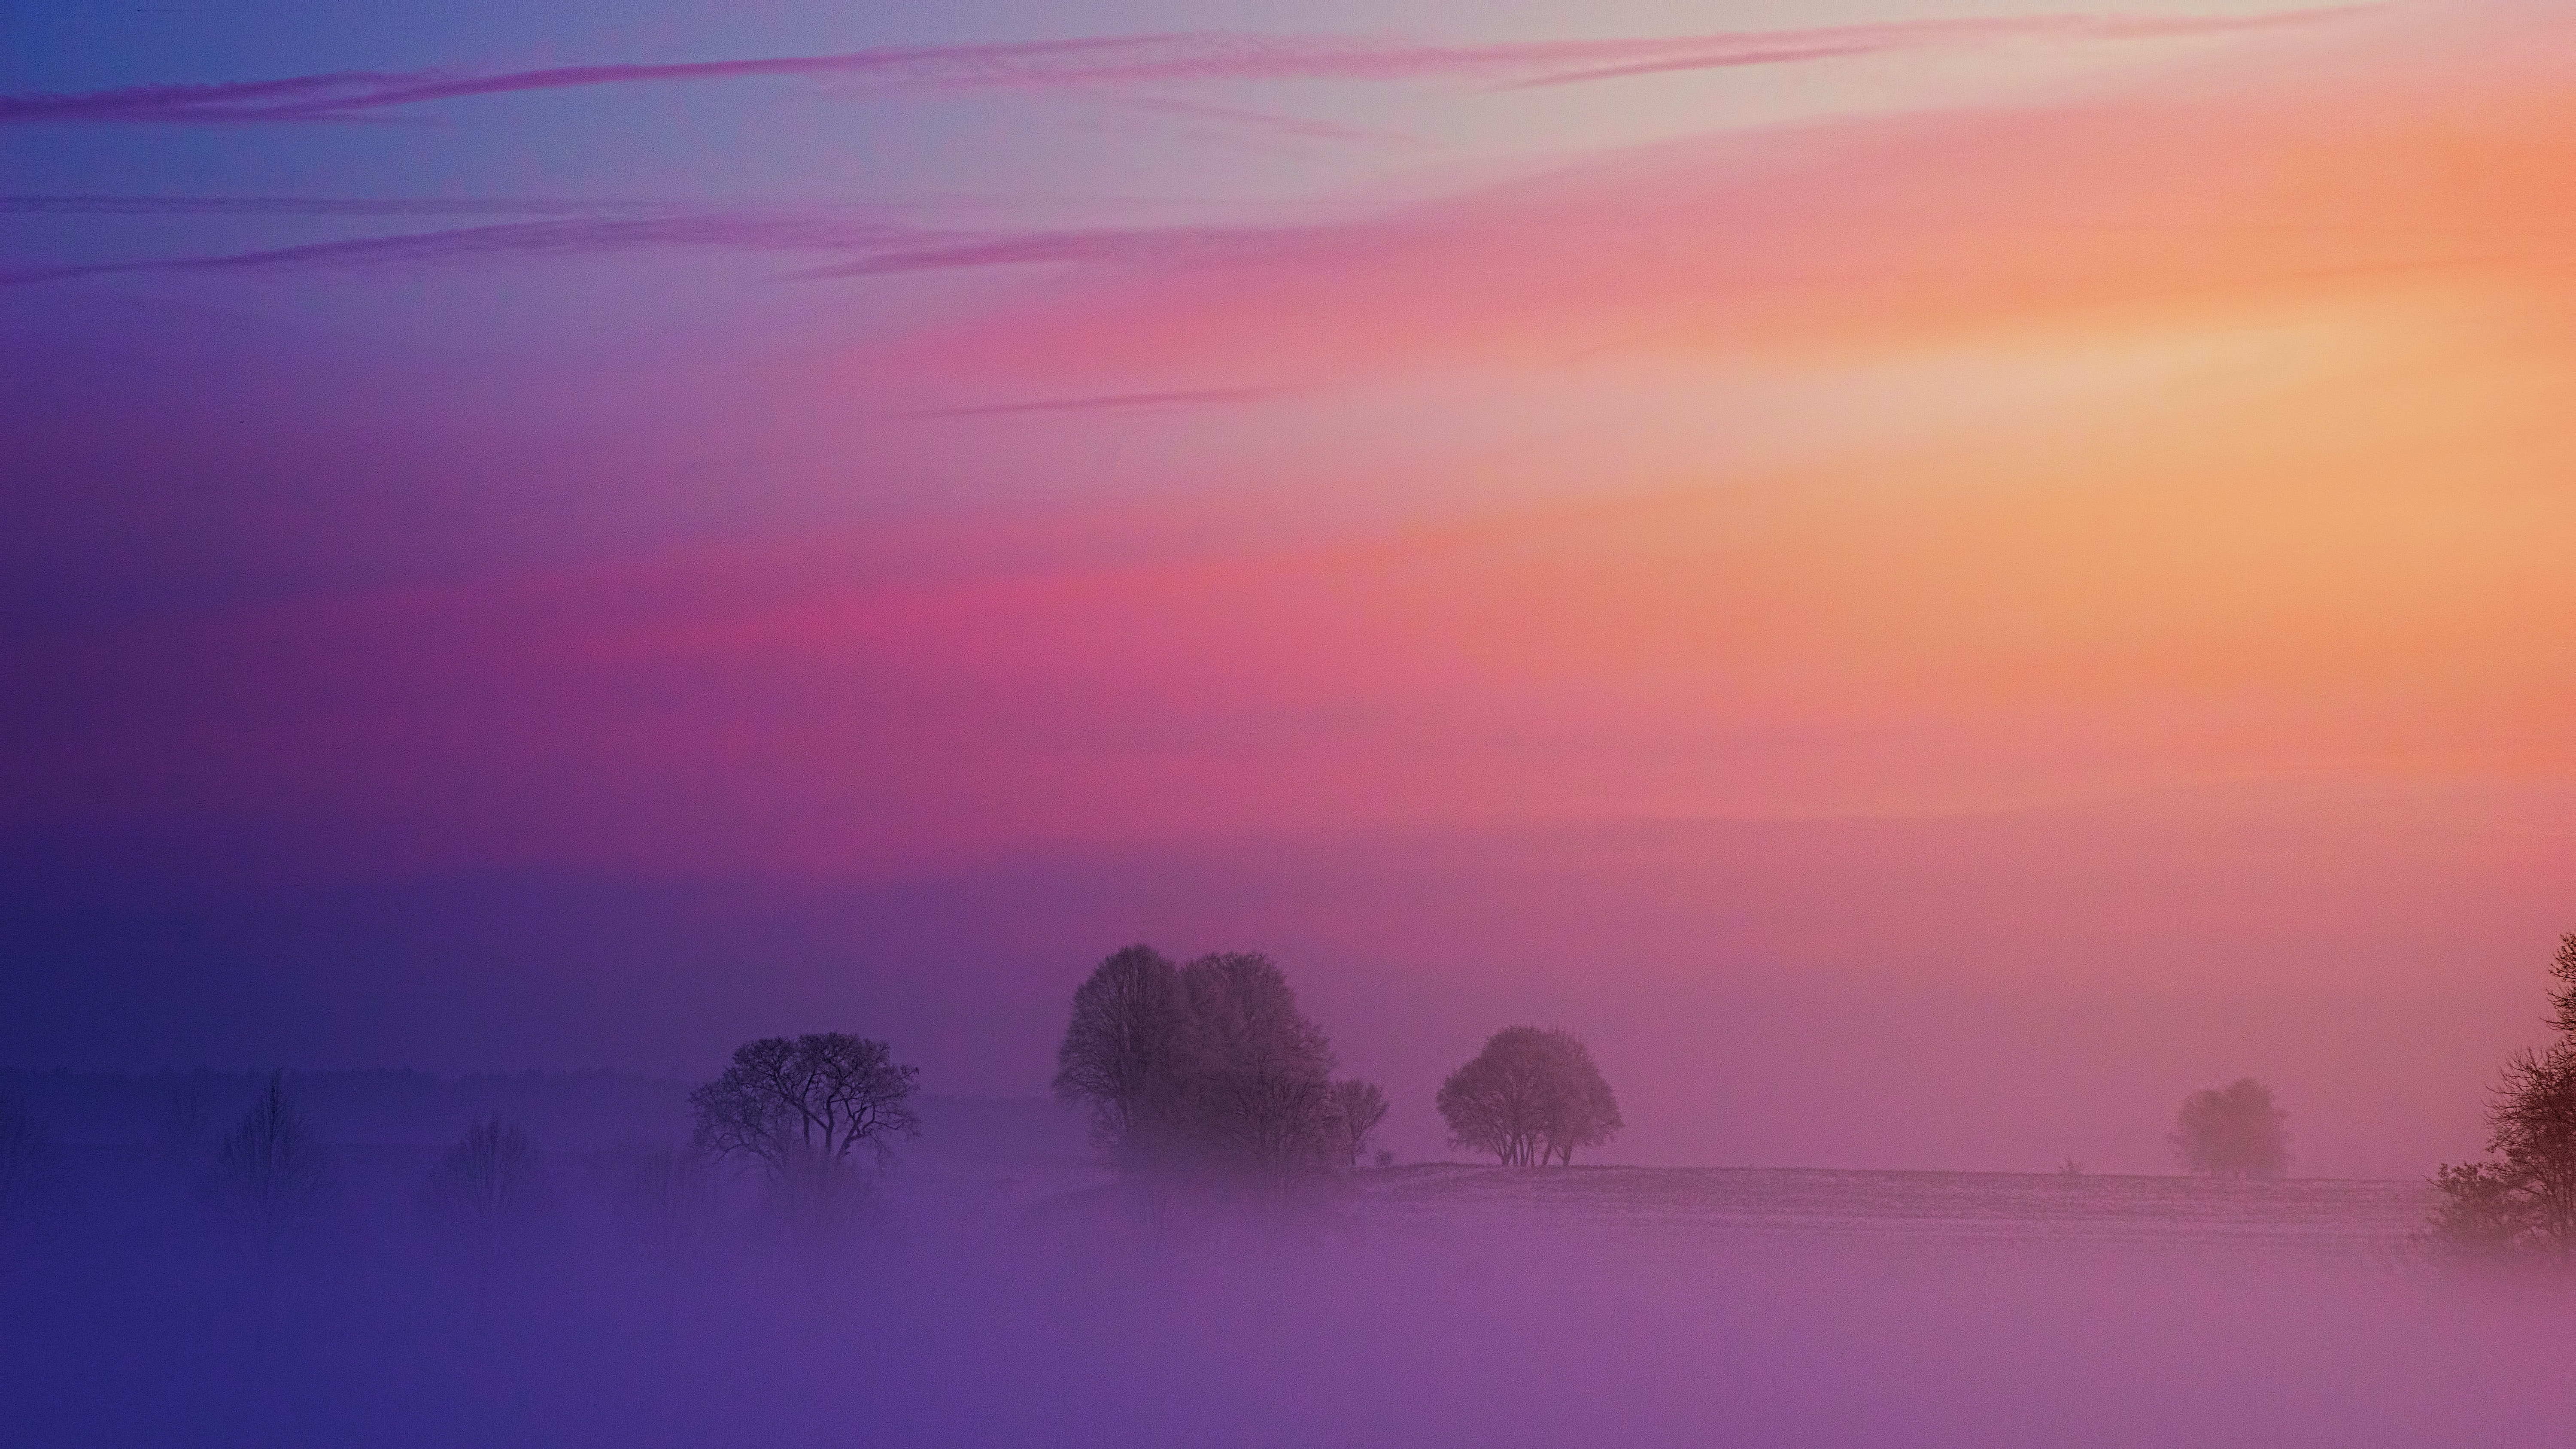 Fog covered trees with a purple sunset overhead.